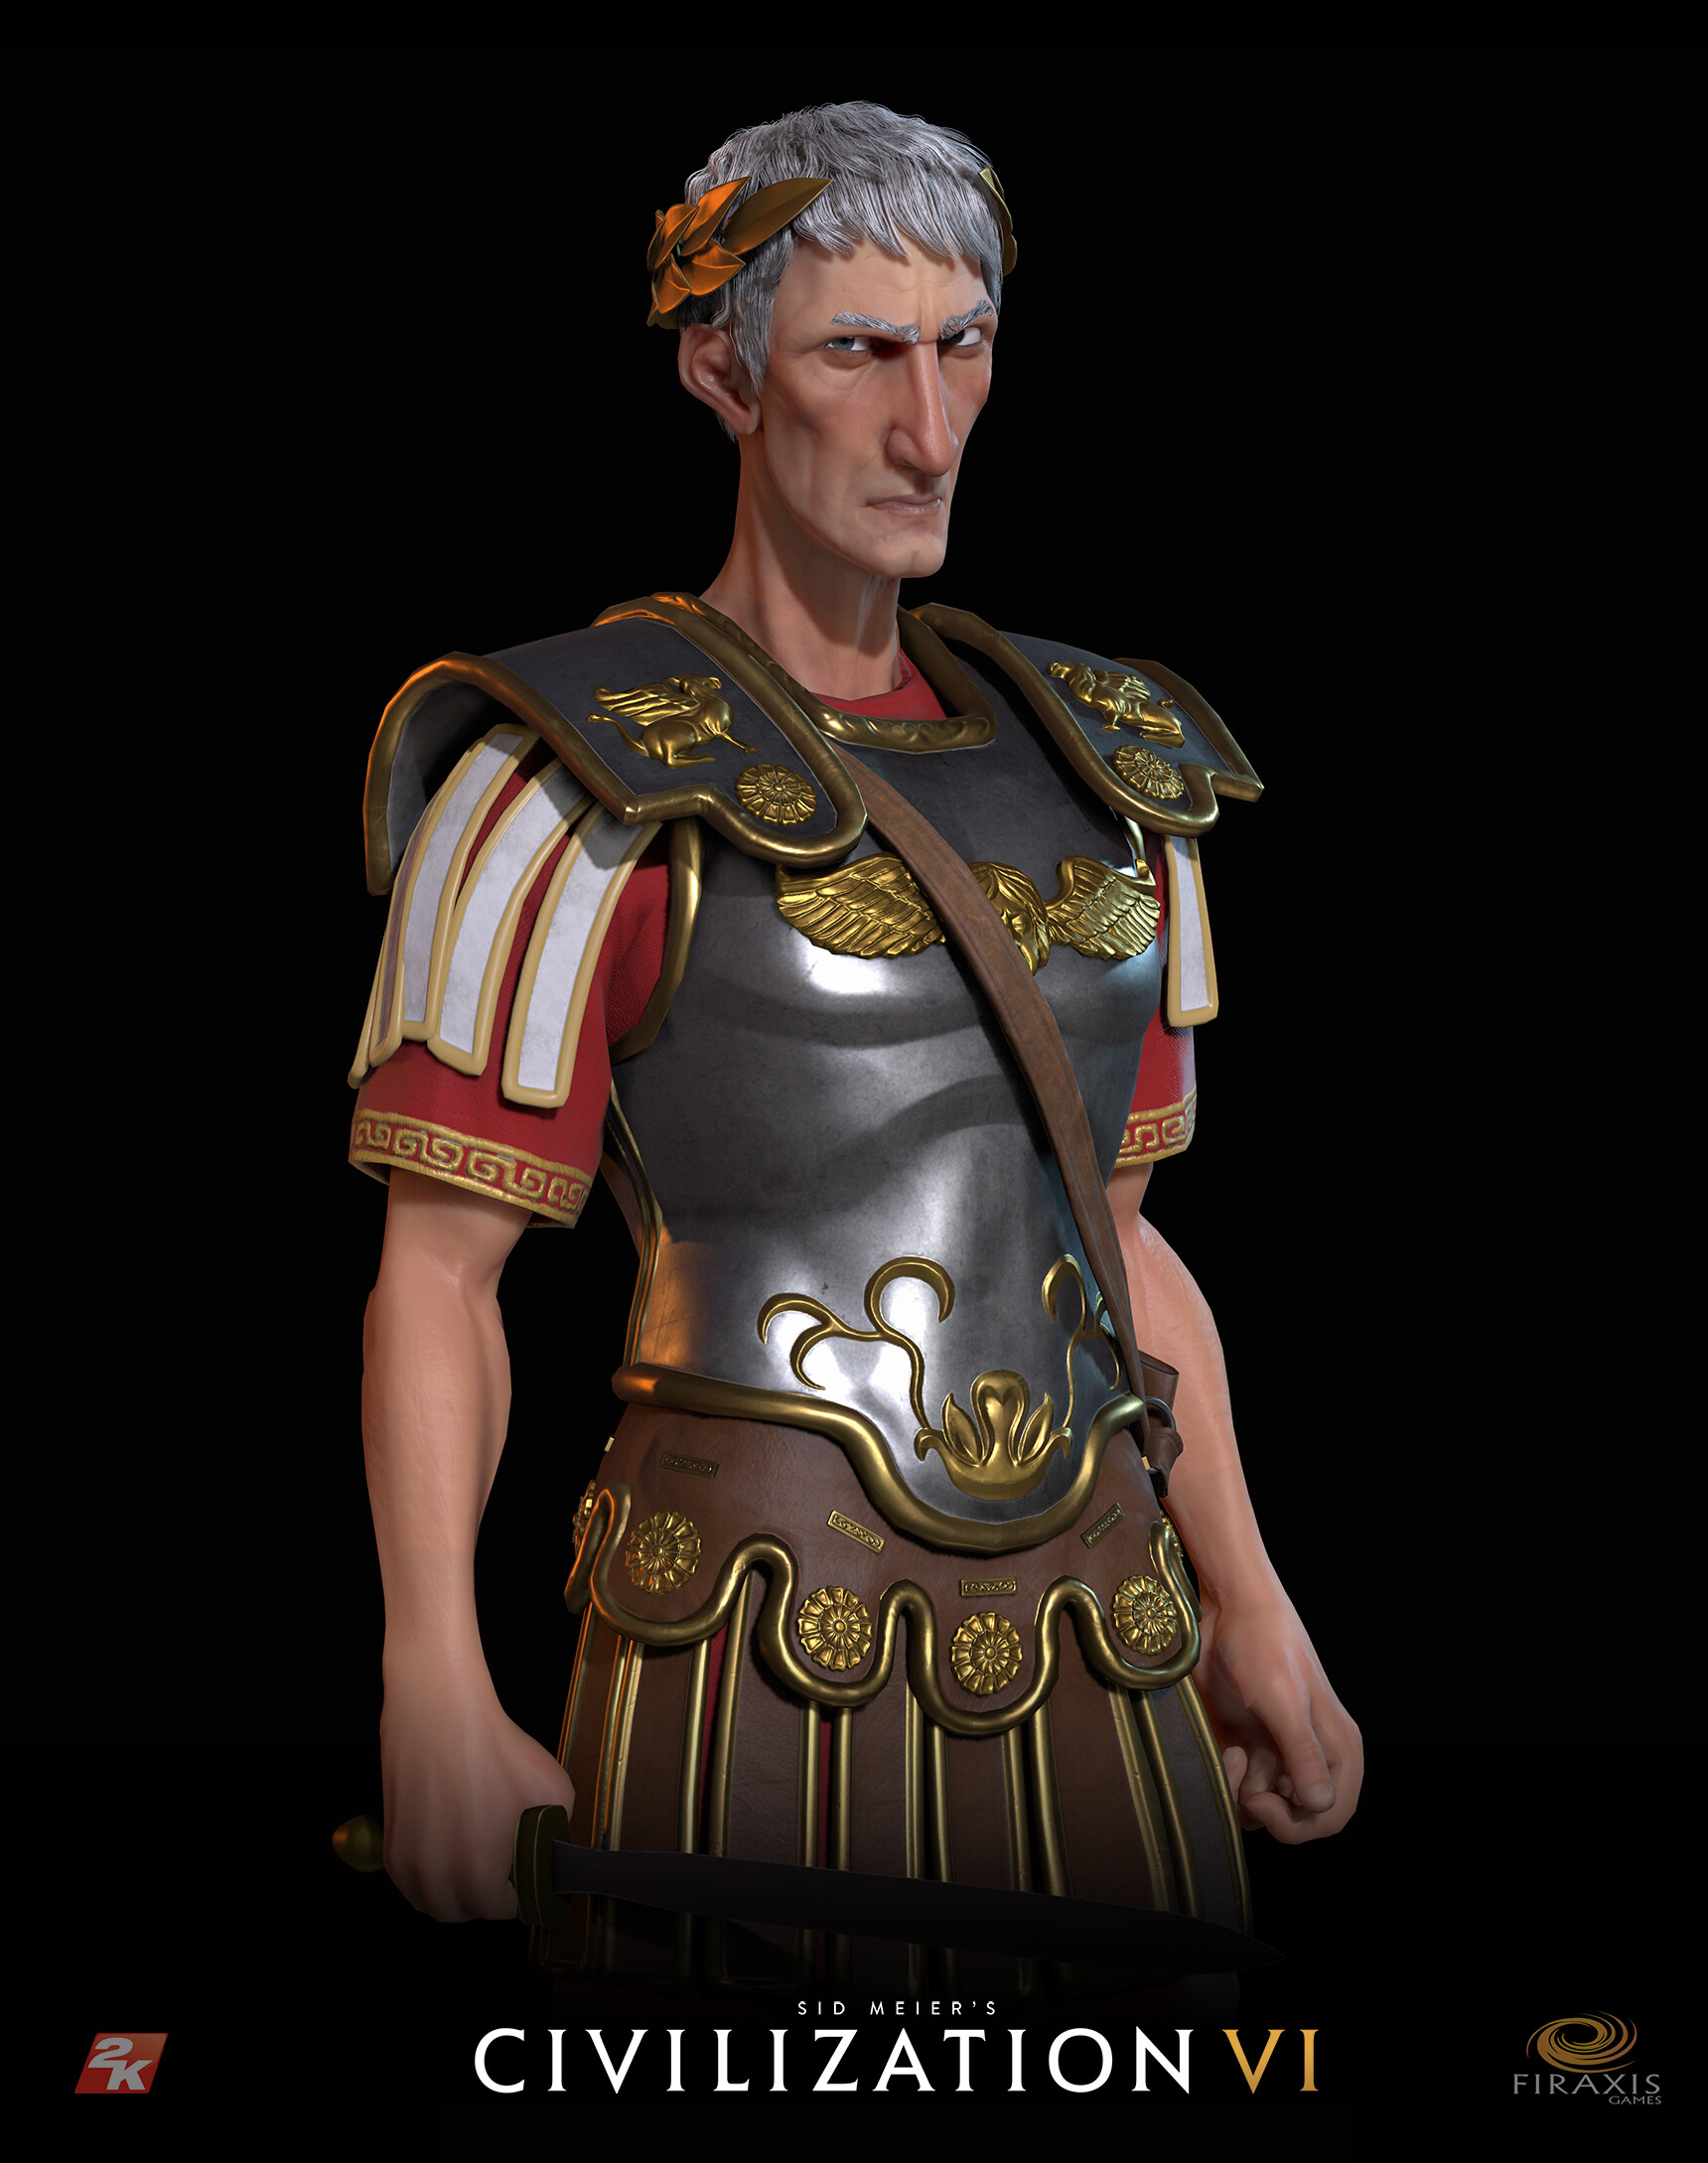 David jones civvi trajan portrait